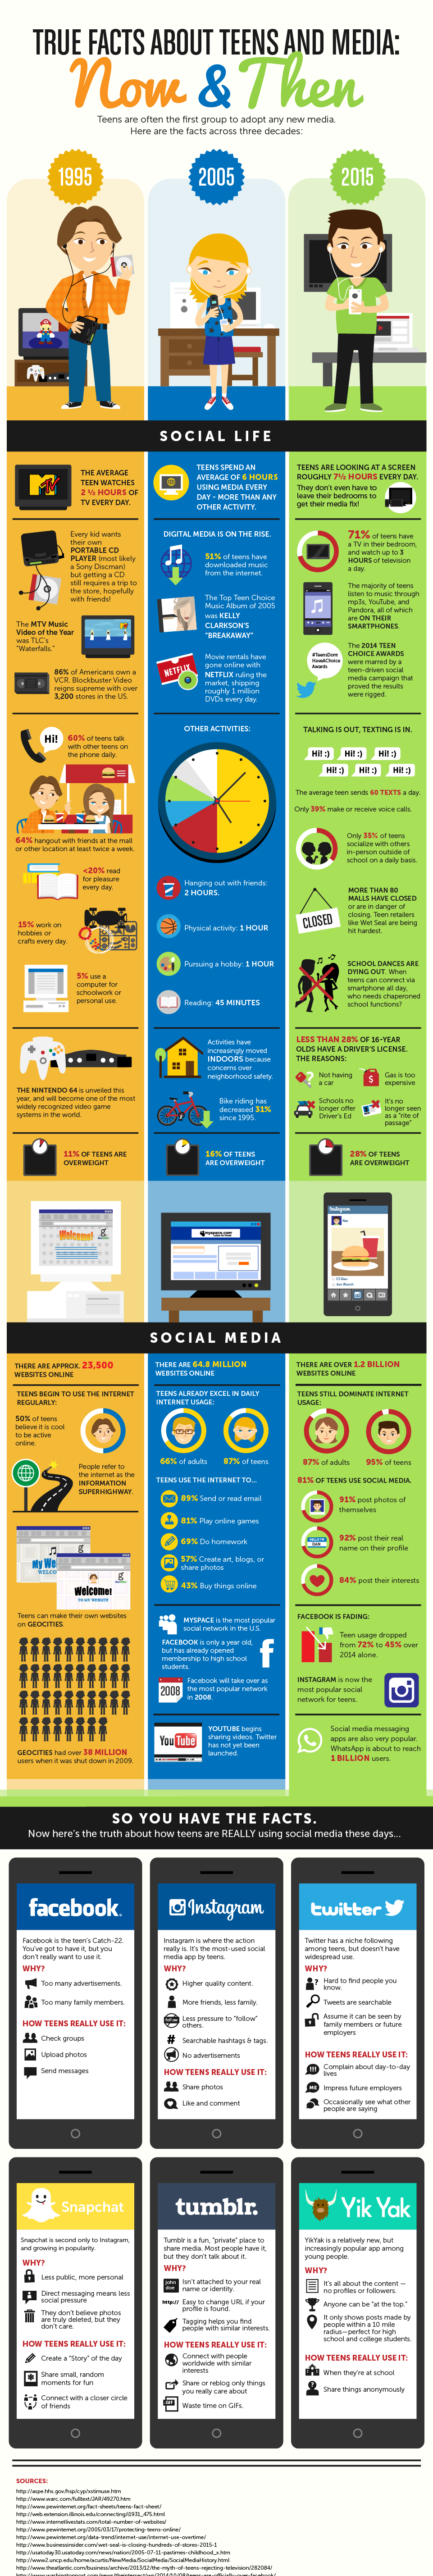 True Facts About Teens and Media, Now and Then